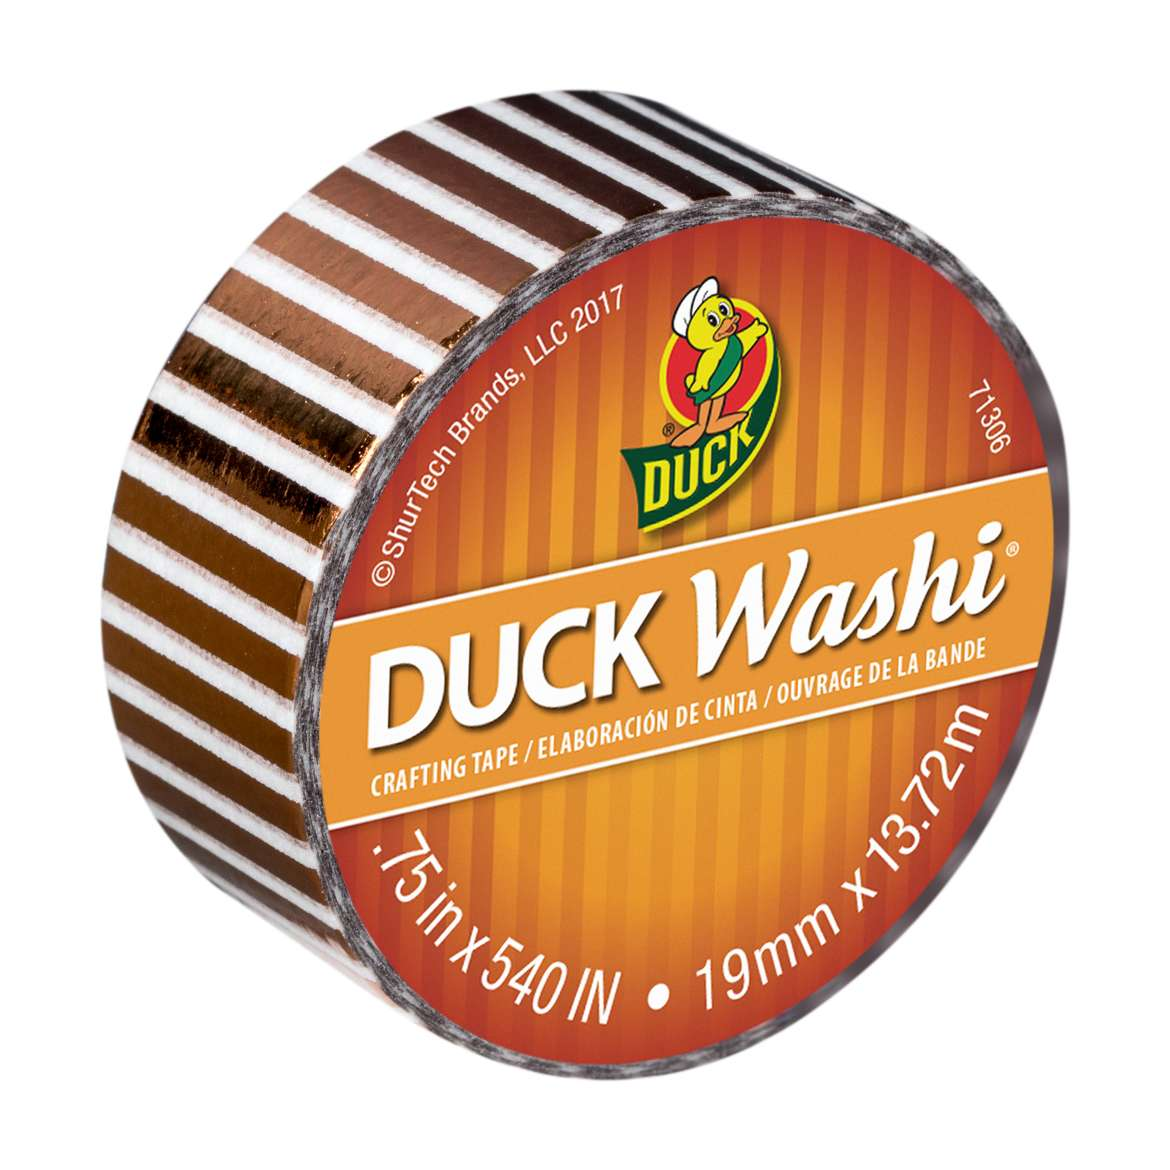 Duck Washi® Crafting Tape - Metallic Bronze Stripe, 0.75 in. X 15 yd. Image